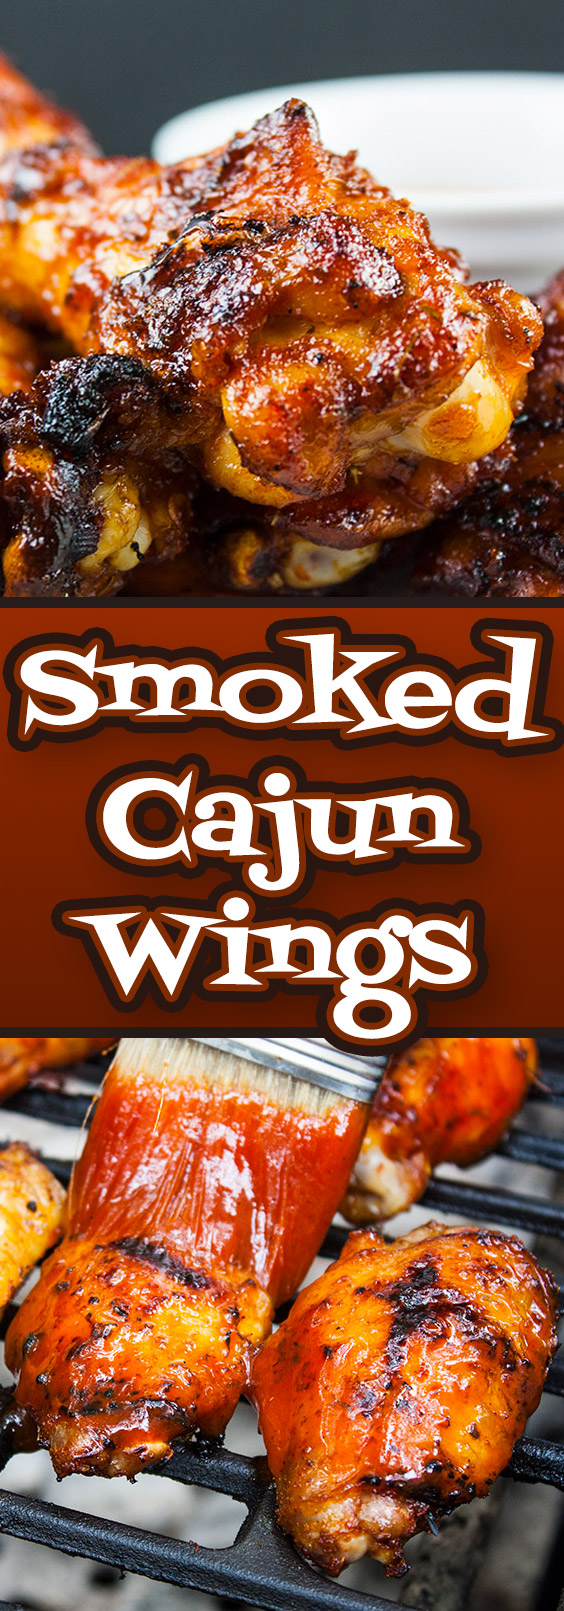 Cajun Smoked Chicken Wings - These barbecued chicken wings have a spicy Cajun rub meeting up with some sweet Pecan wood smoke, then finished off with an aromatic hot sauce. Deliciously smokey and spicy with a slight sticky sweet sauce that brings it all together in the most incredible chicken wing you will ever have.